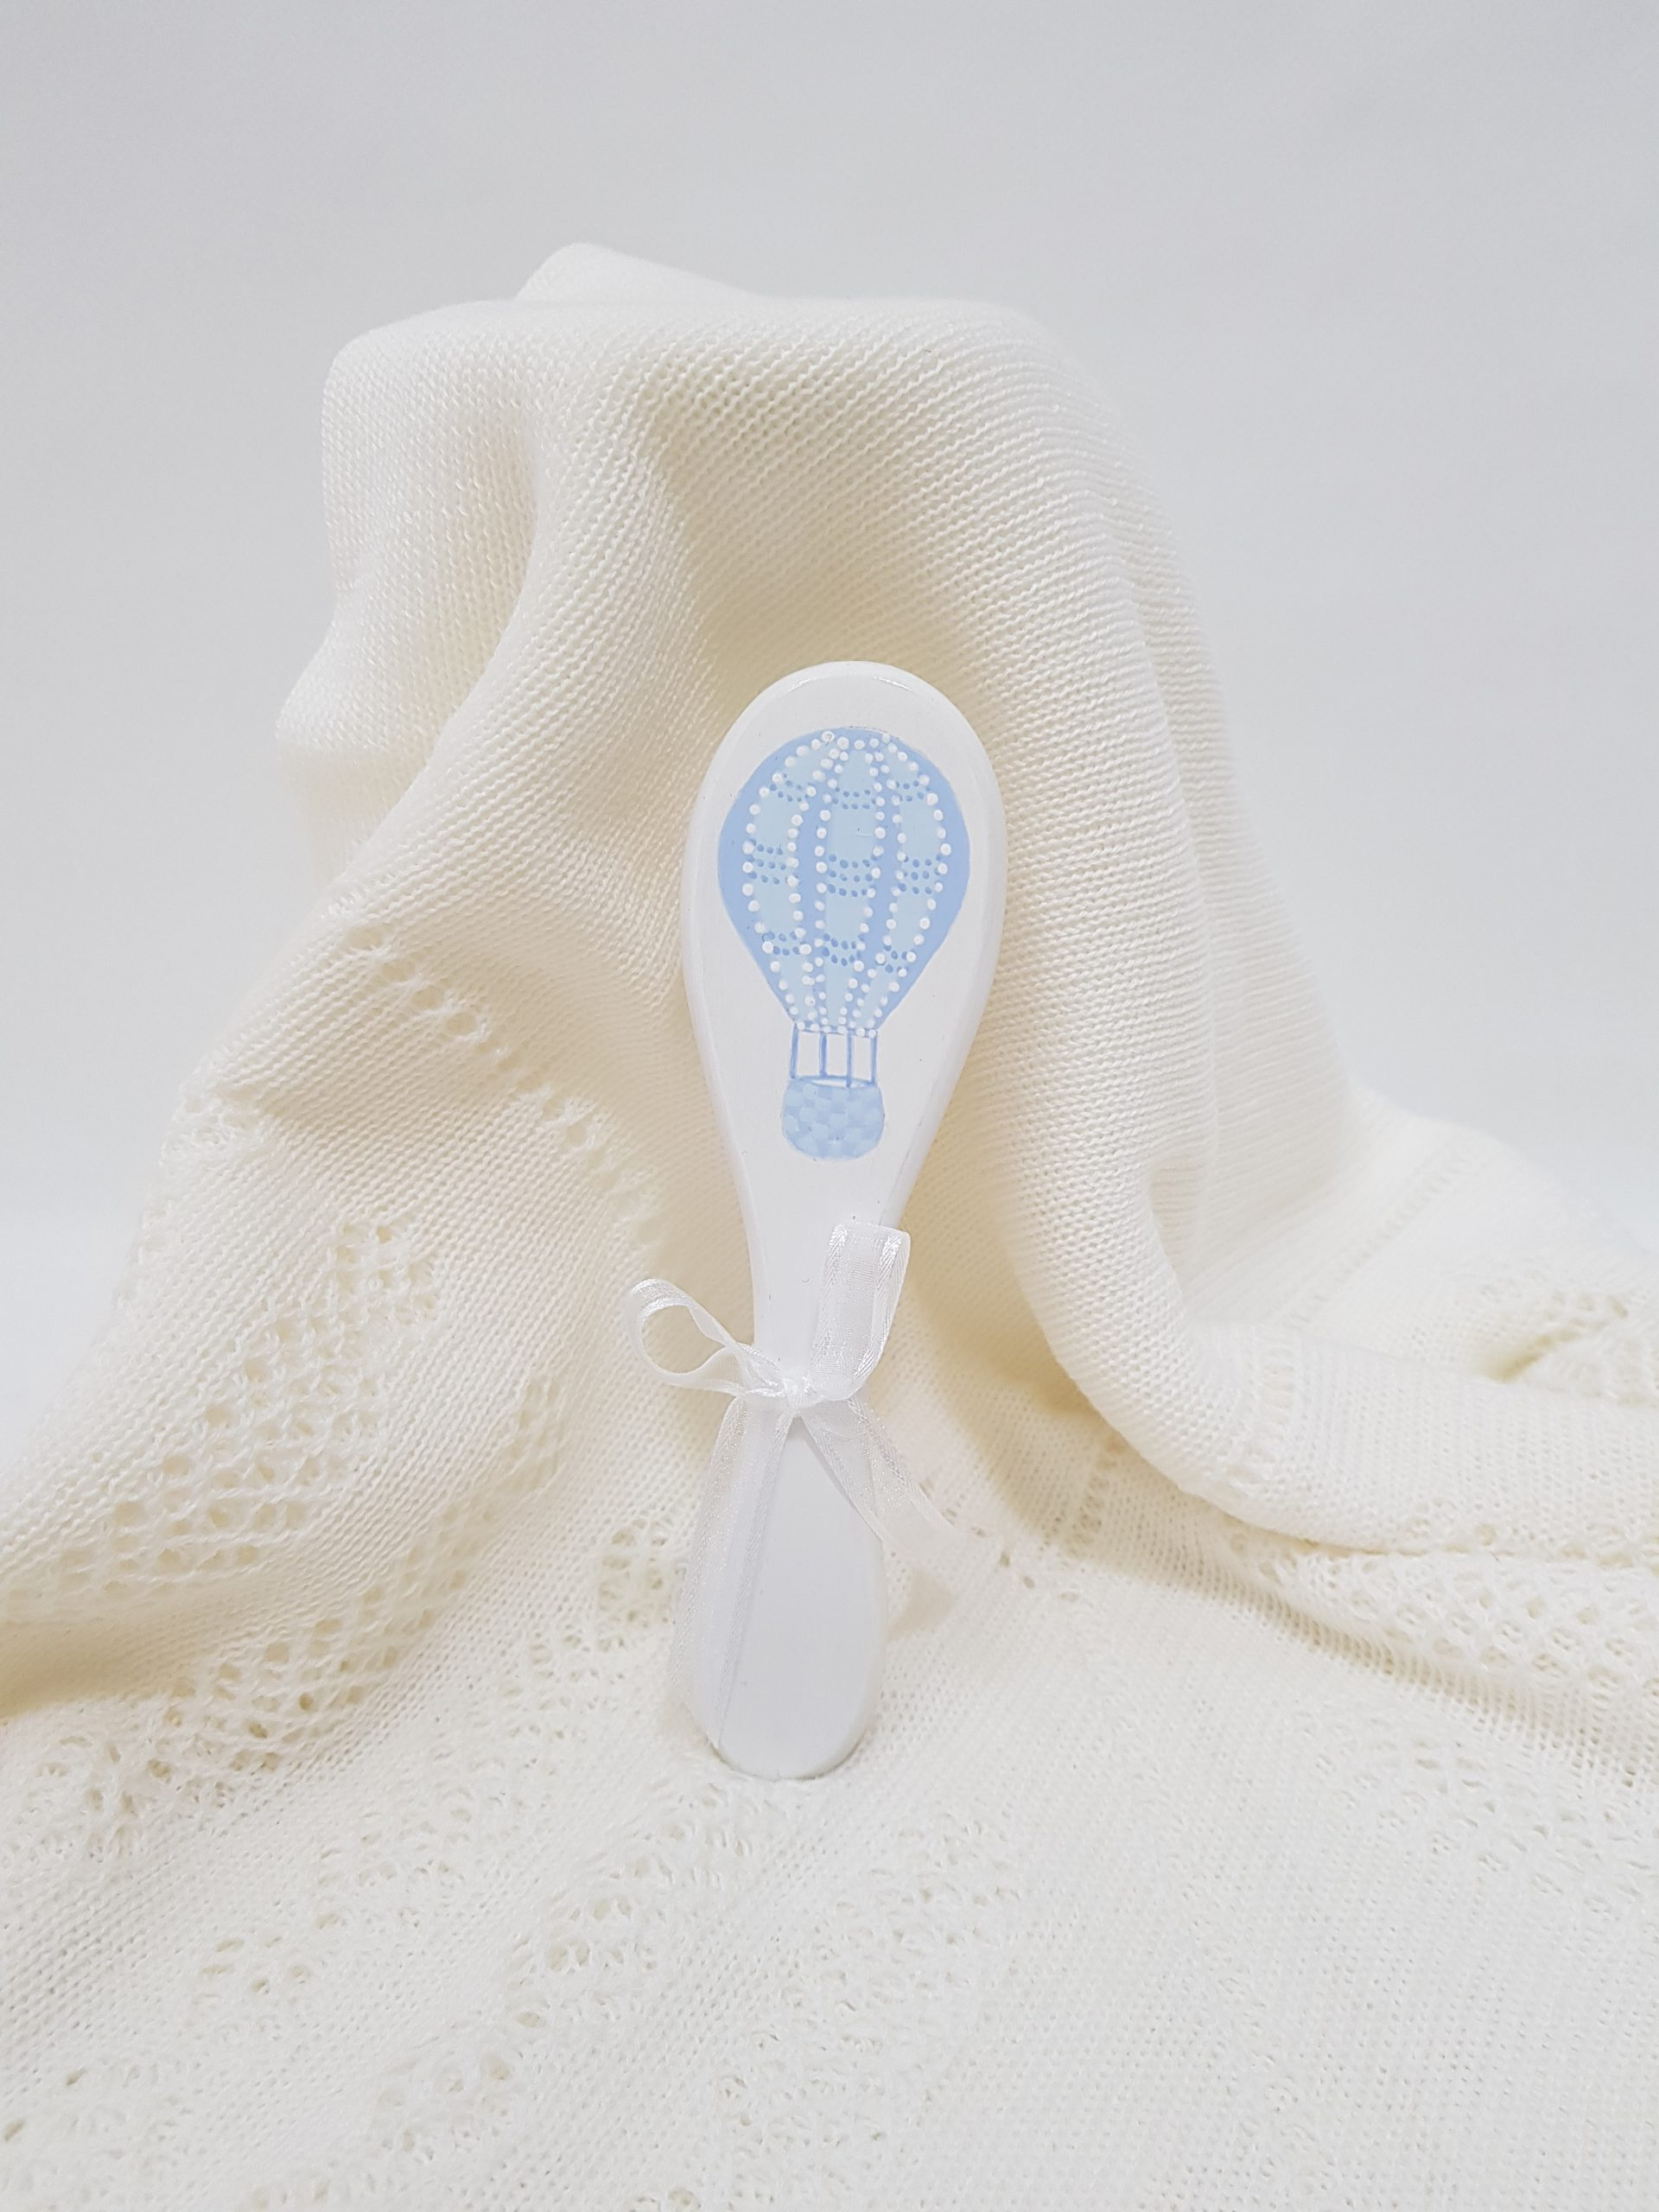 christening-baptism-hair-brush-hotairballoon-babyblue-hb20